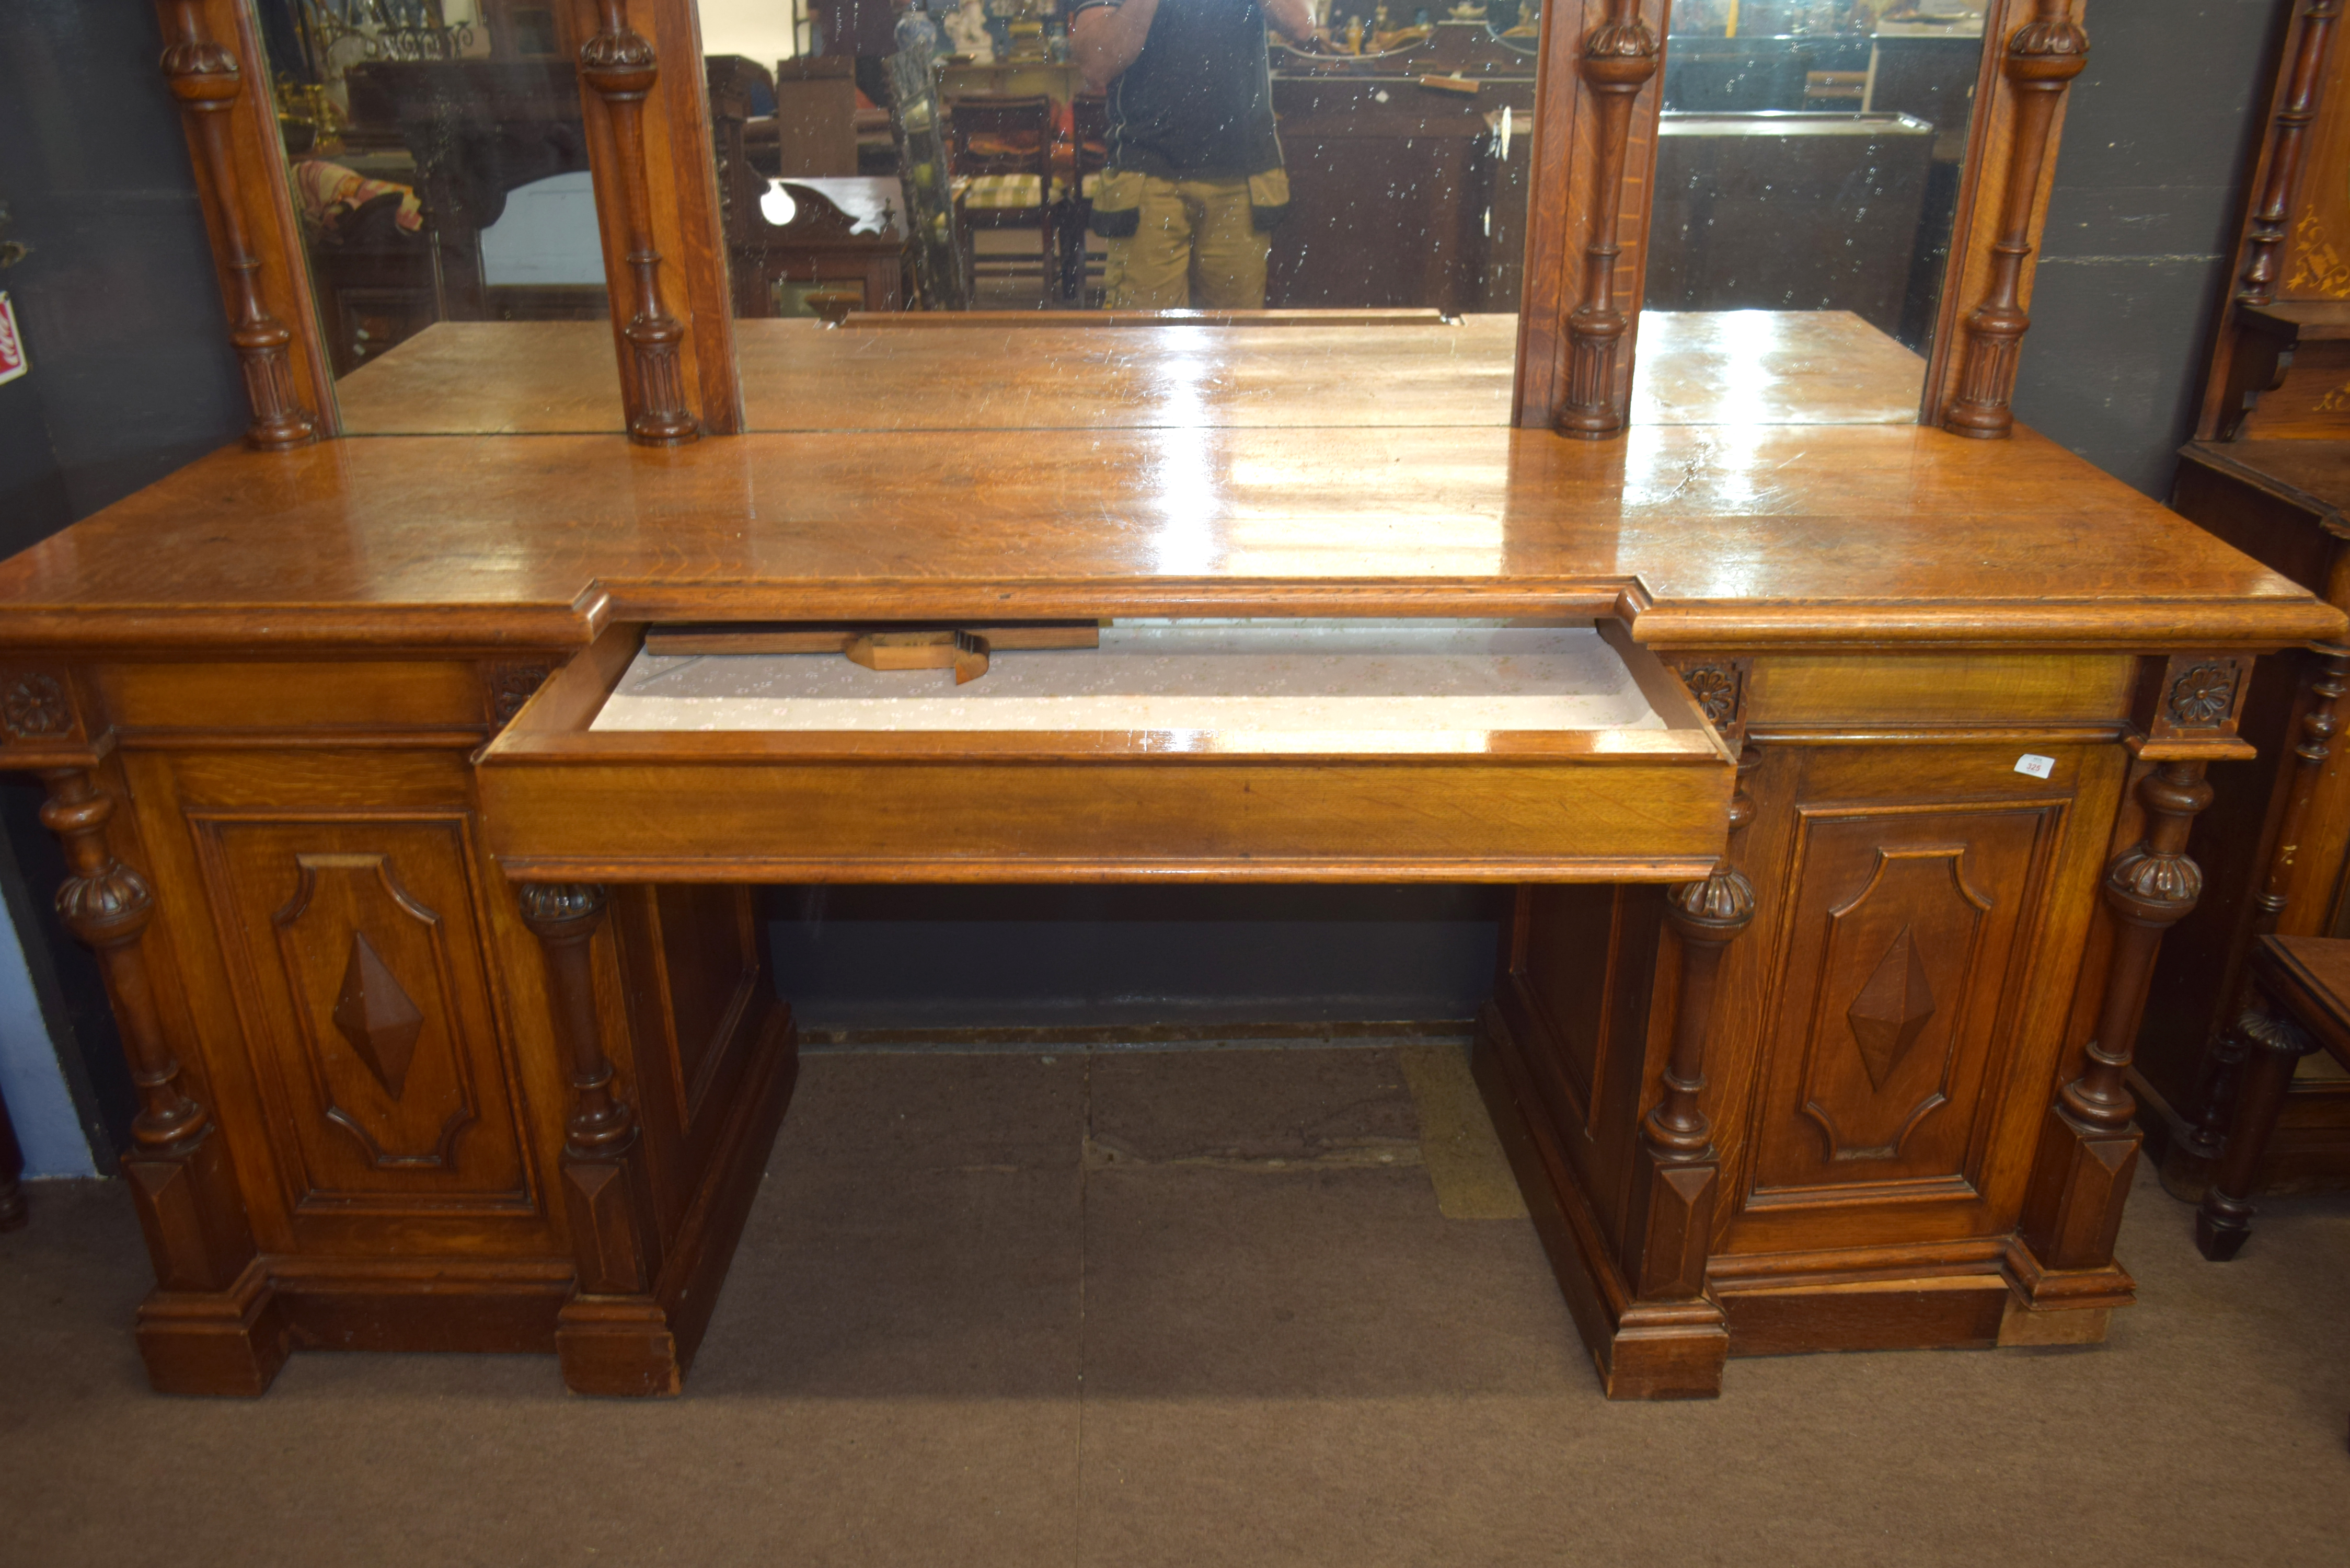 Very large and imposing Victorian Oak mirror back sideboard, back panel with three mirror plates and - Image 6 of 7